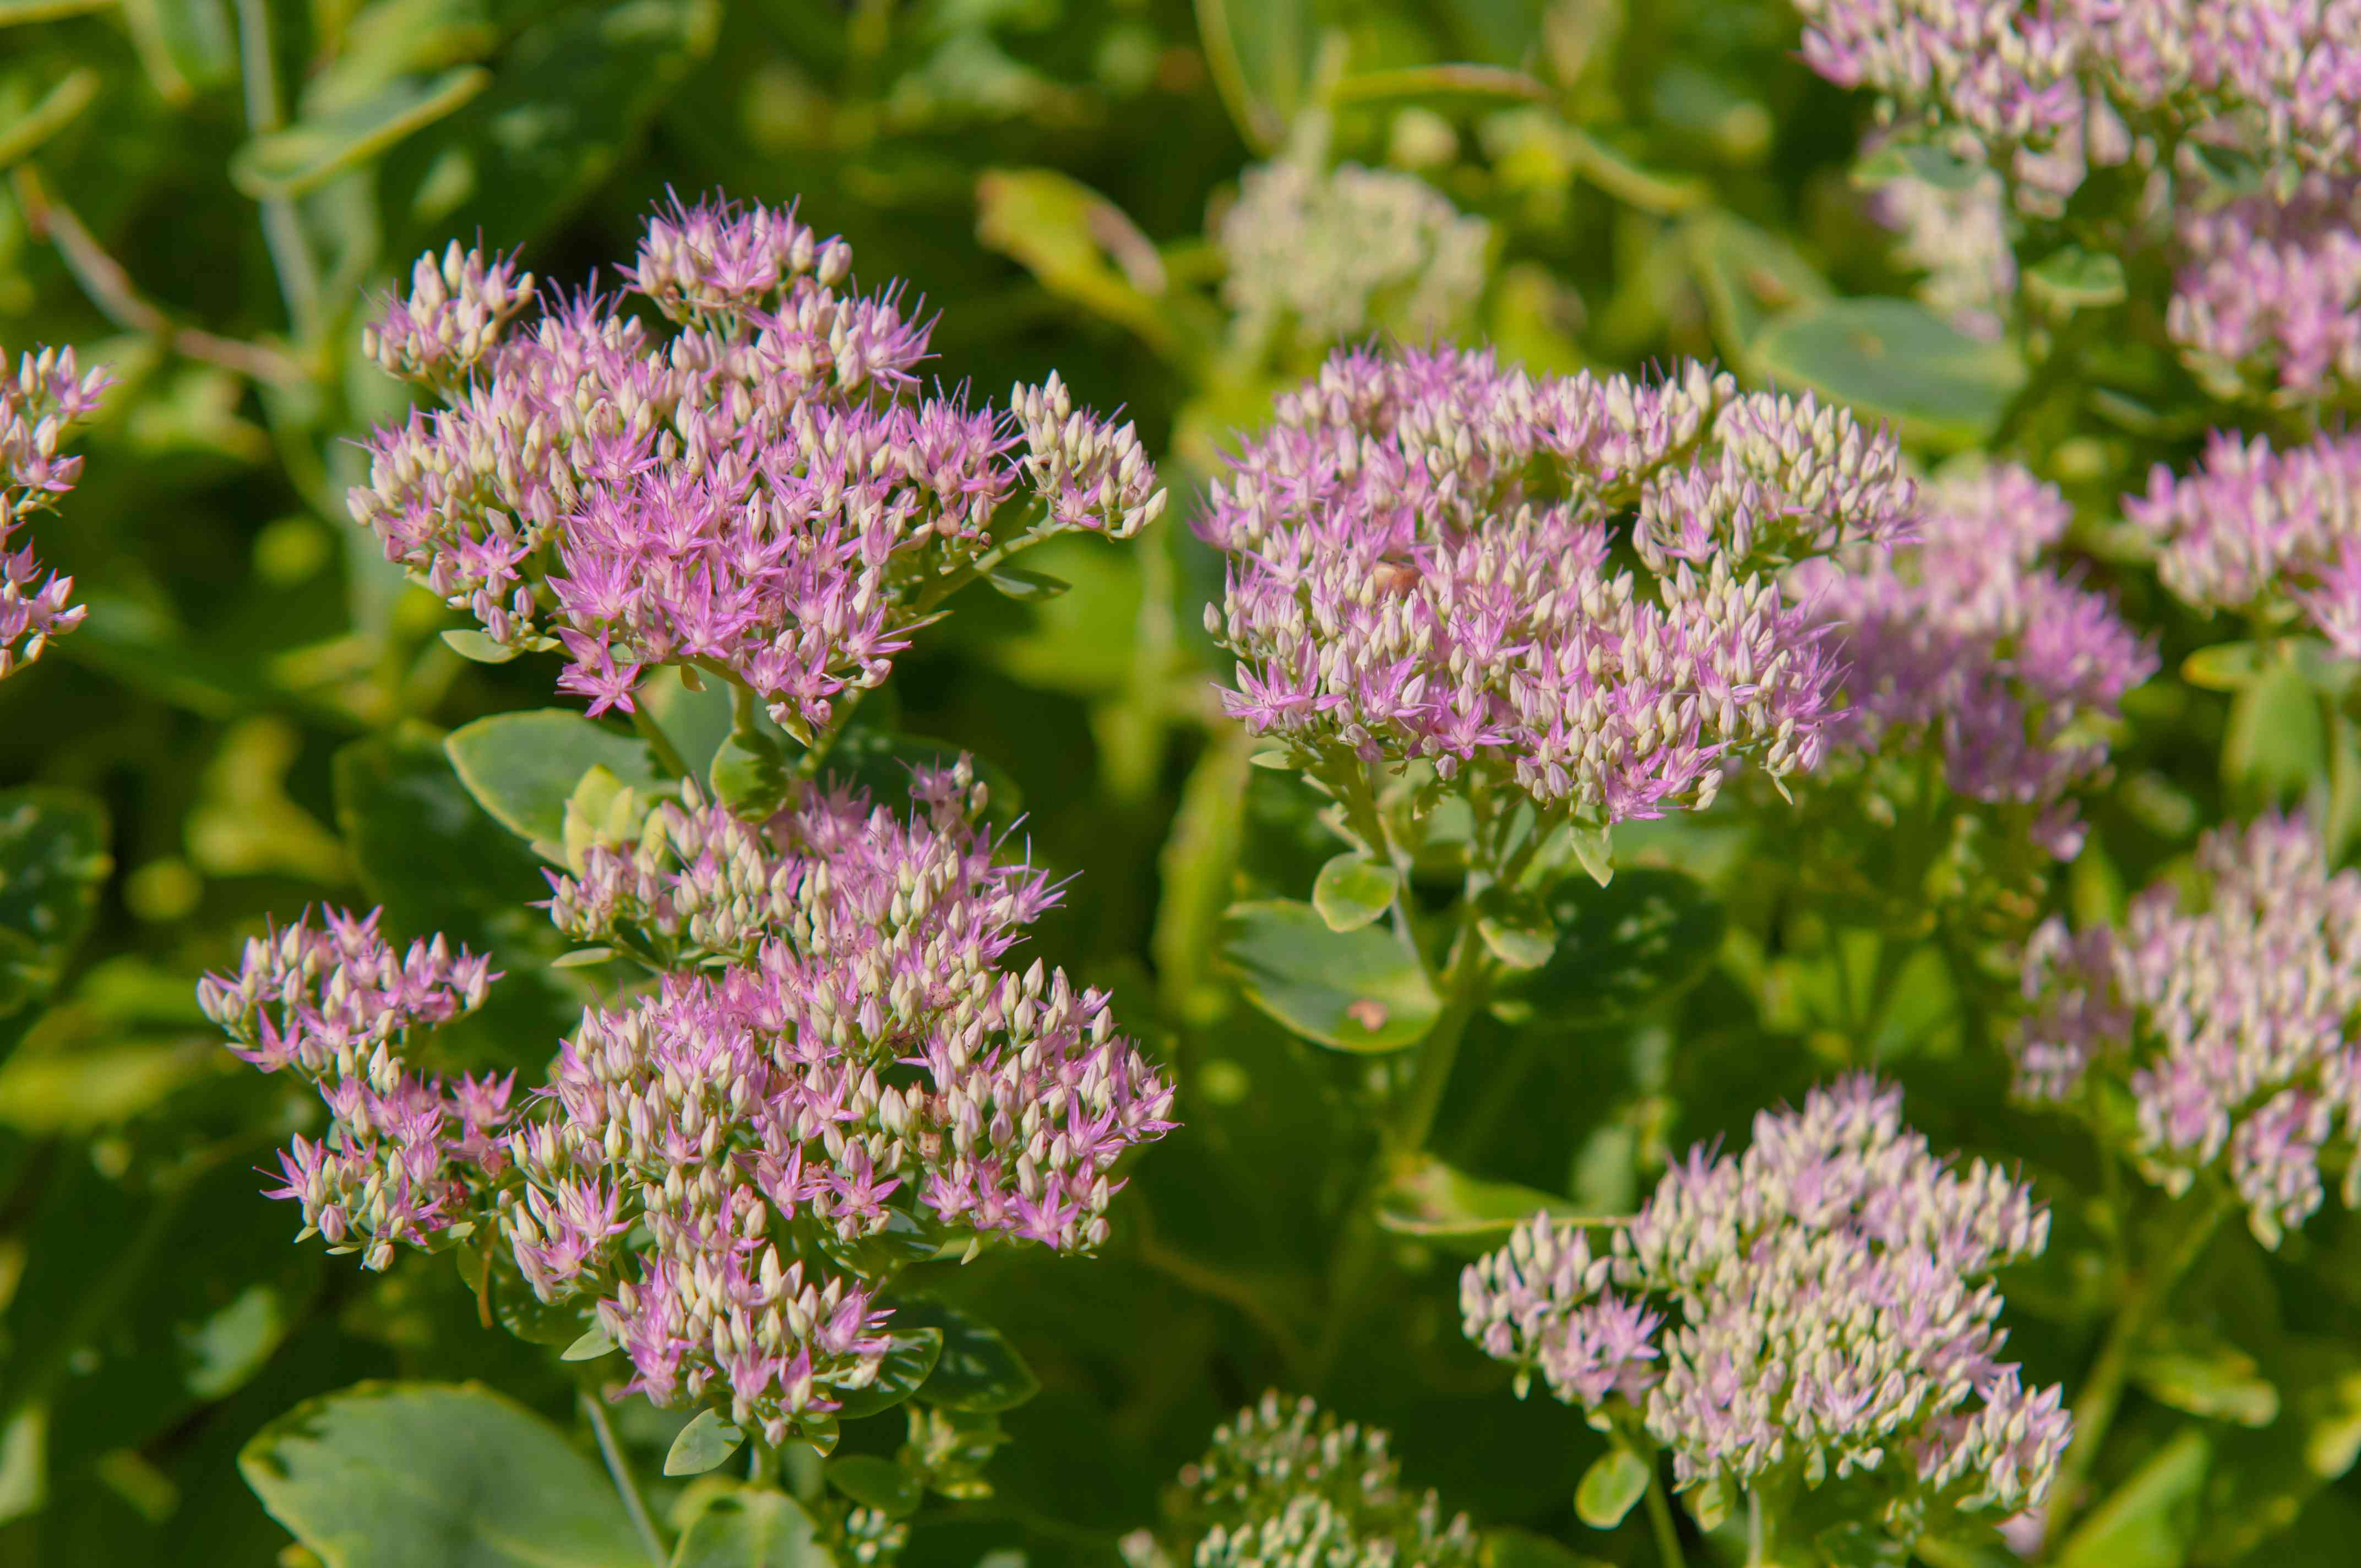 Stonecrop plant with small purple broccoli-like flowers in sunlight